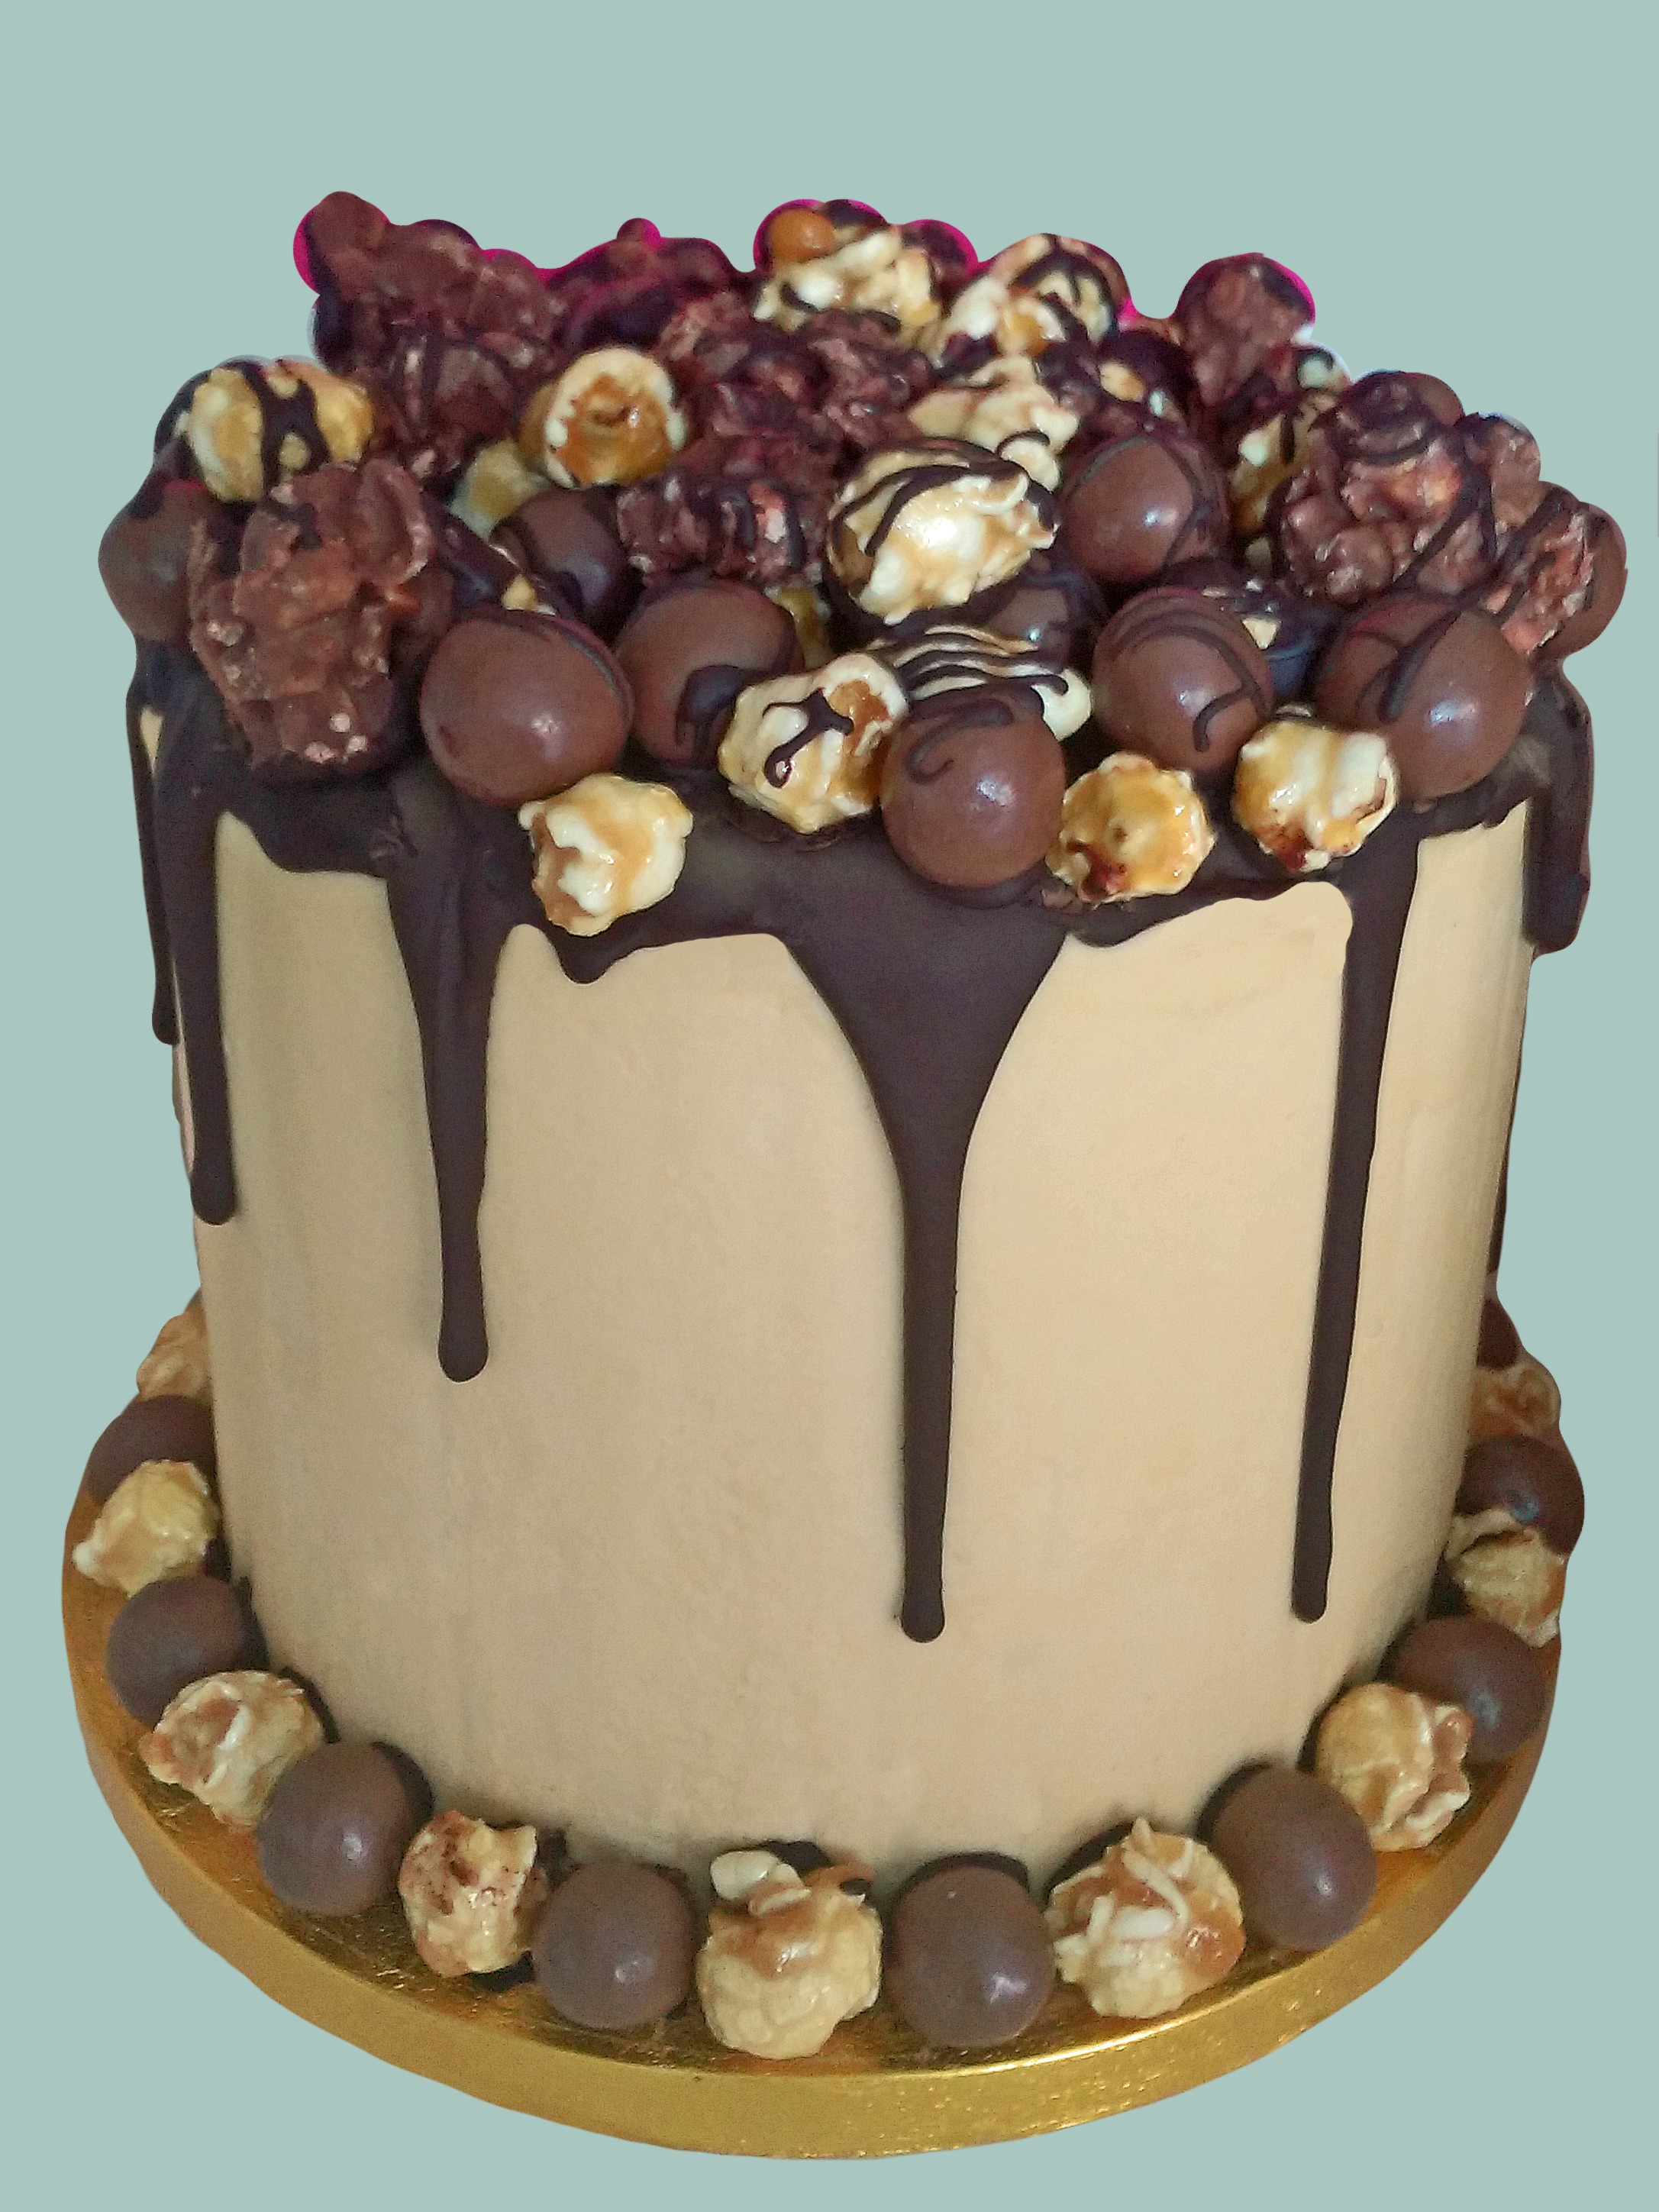 Chocolate Lovers Dream Drip Cake